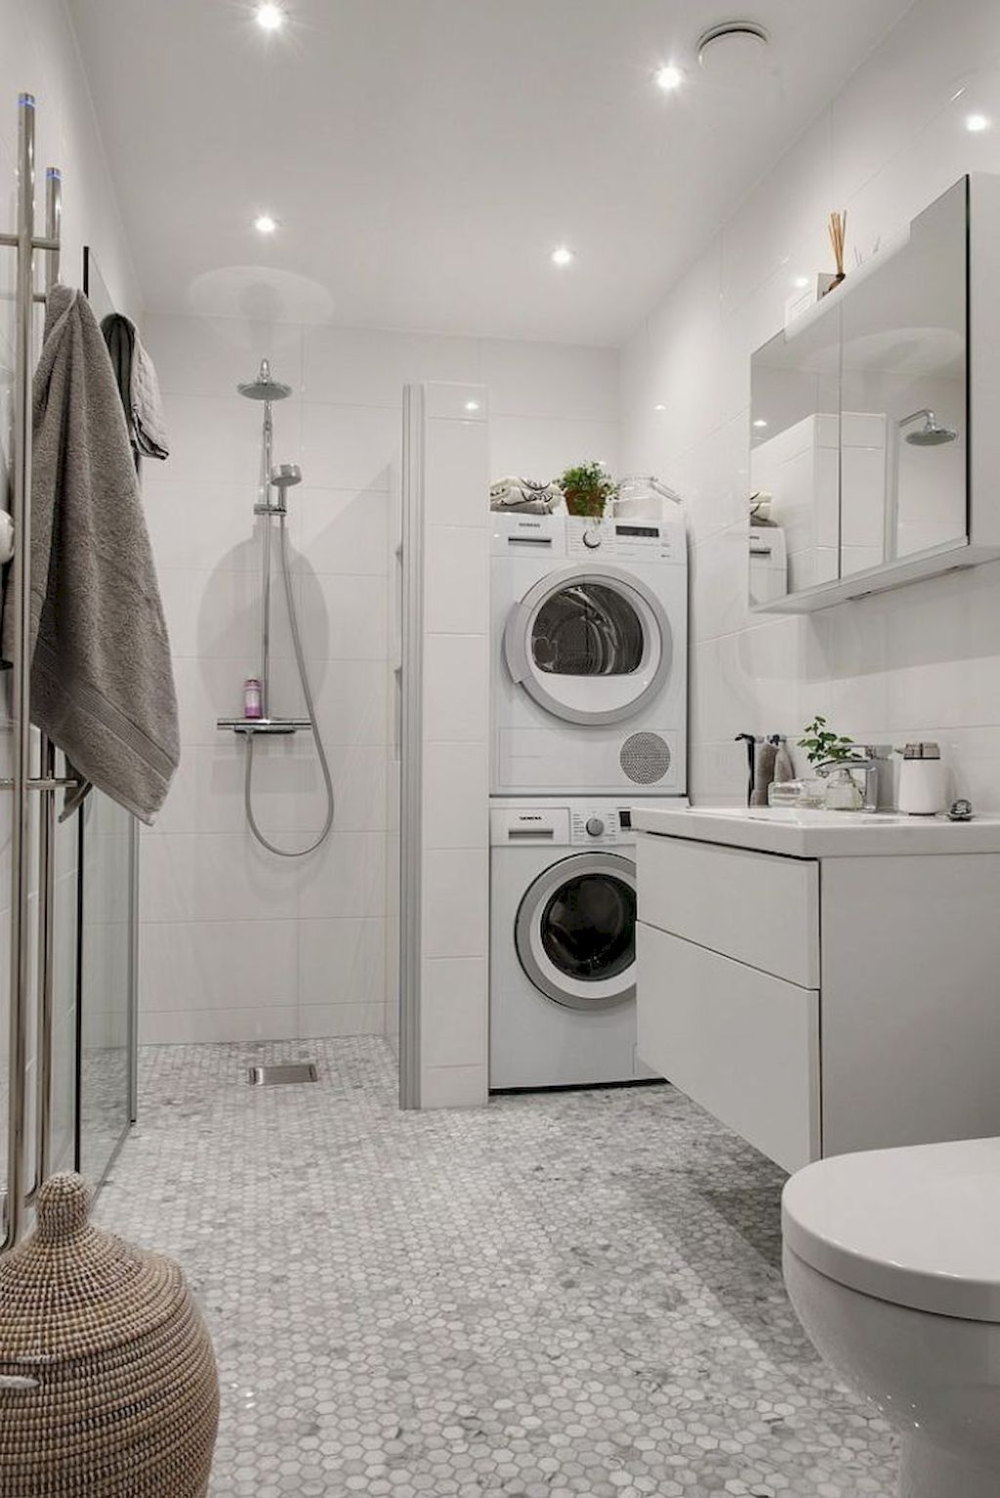 10 Bathroom Laundry Room Ideas 2020 The Two In One Model In 2020 Laundry Room Bathroom Laundry Bathroom Combo Modern Laundry Rooms